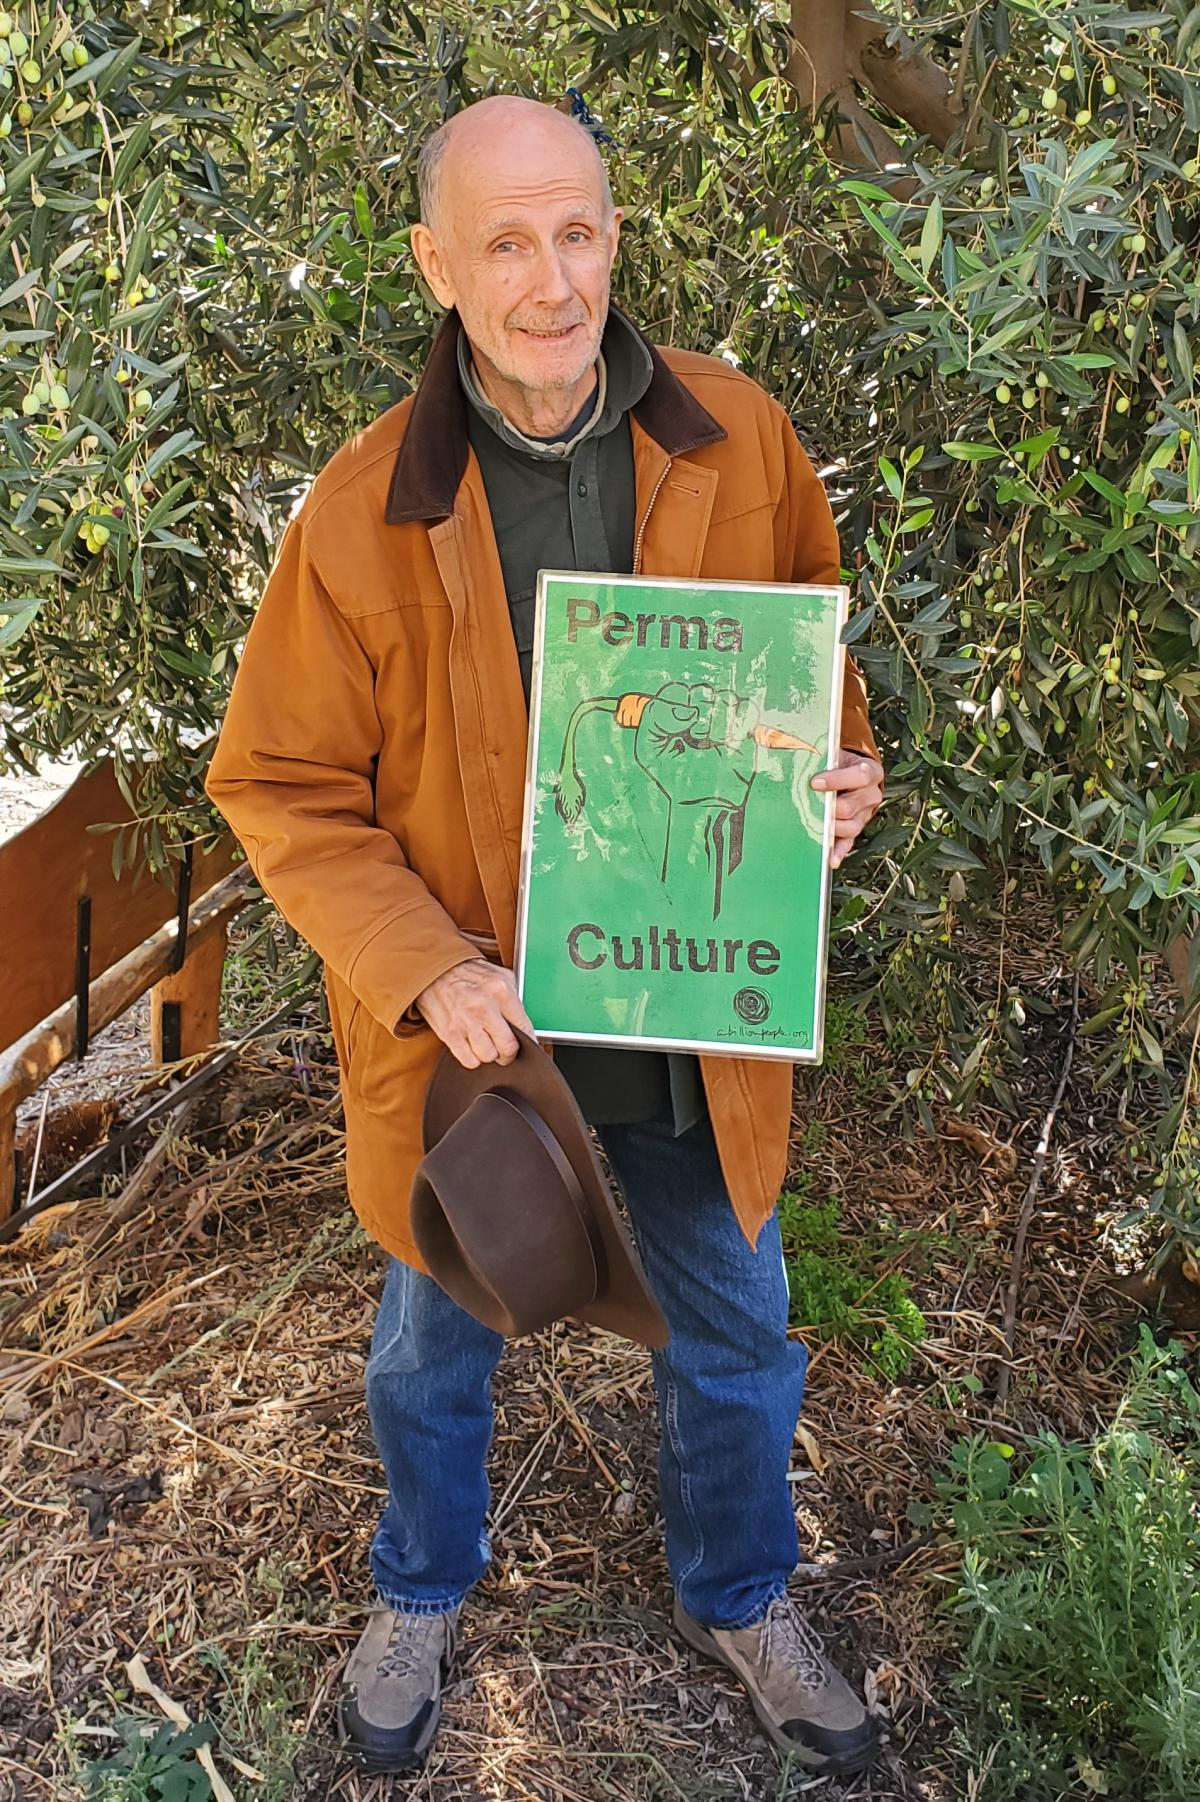 Thom Hawkins chooses not to fly to reduce his carbon footprint. He also tends an organic garden at a local church.